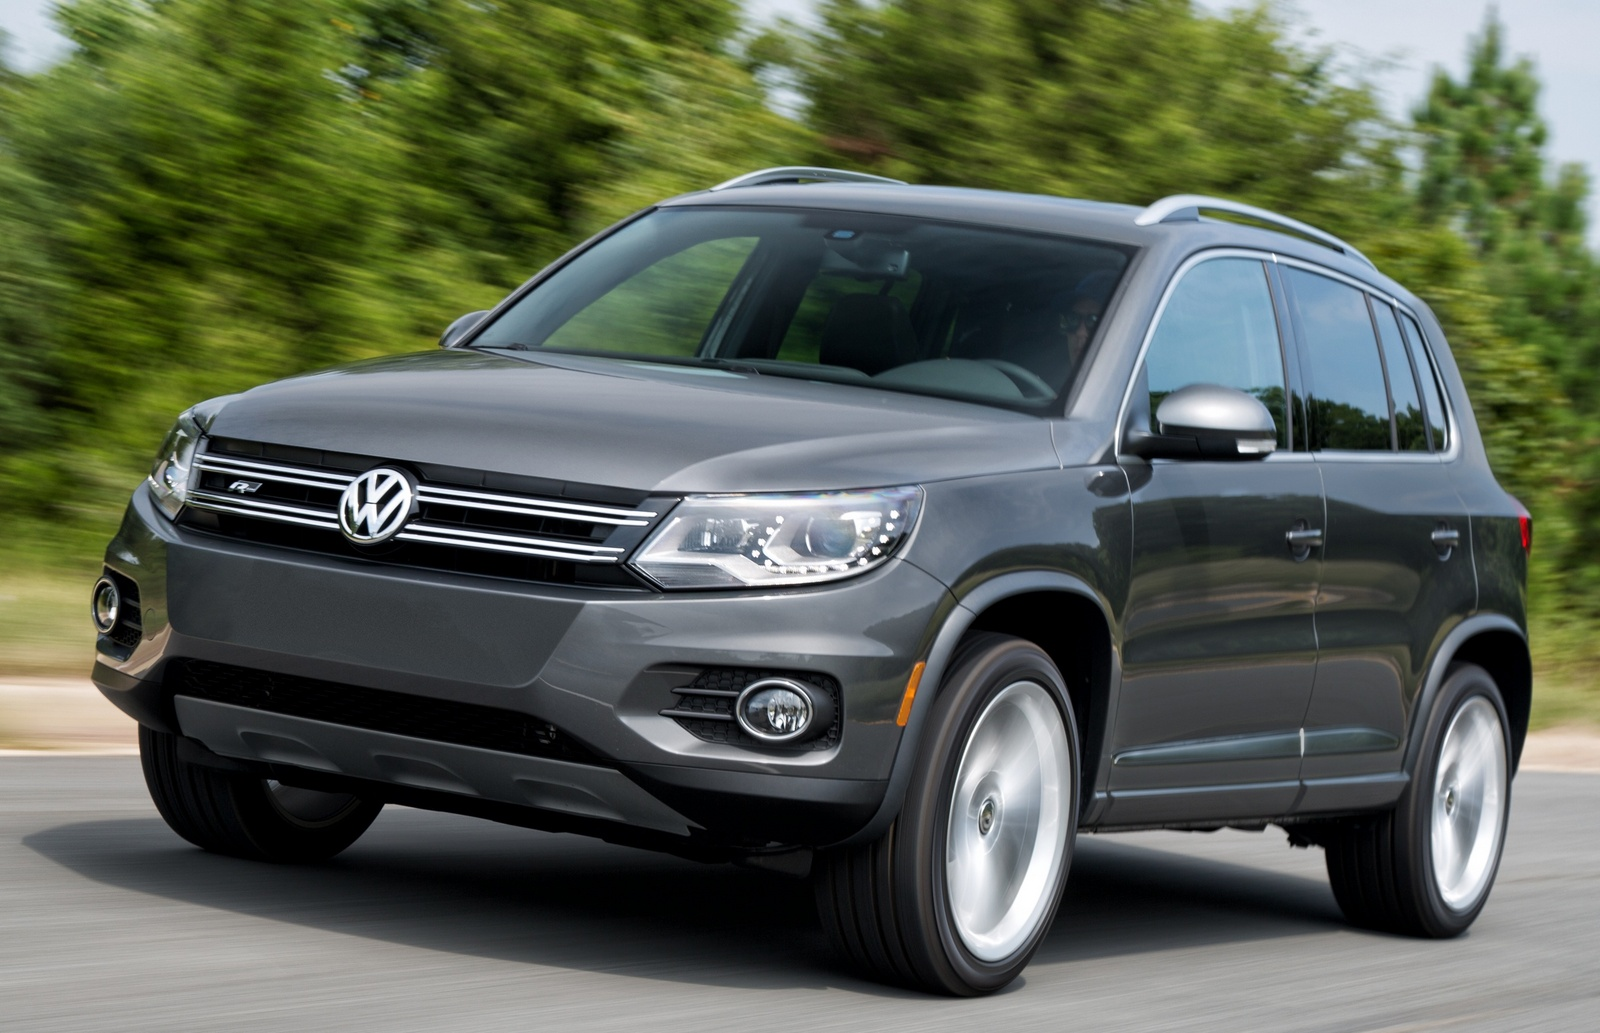 2015 volkswagen tiguan pictures cargurus. Black Bedroom Furniture Sets. Home Design Ideas